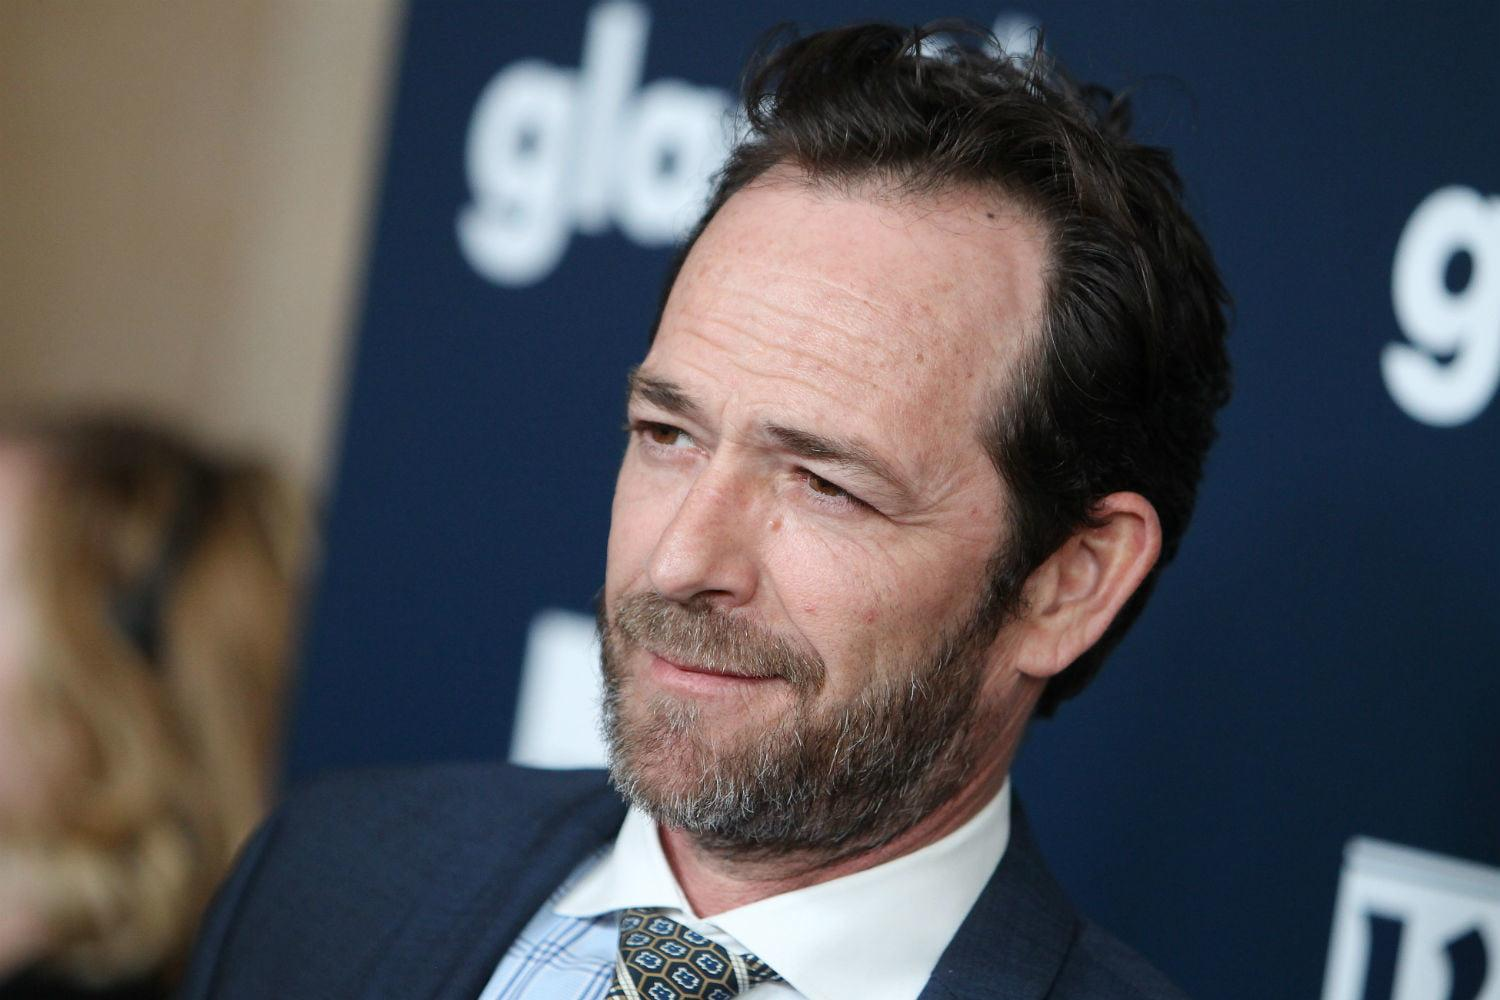 Luke Perry - 'Riverdale' Creator Says His  Character's Absence From The Storyline Is To Be Explained At 'Top Of Season 4'